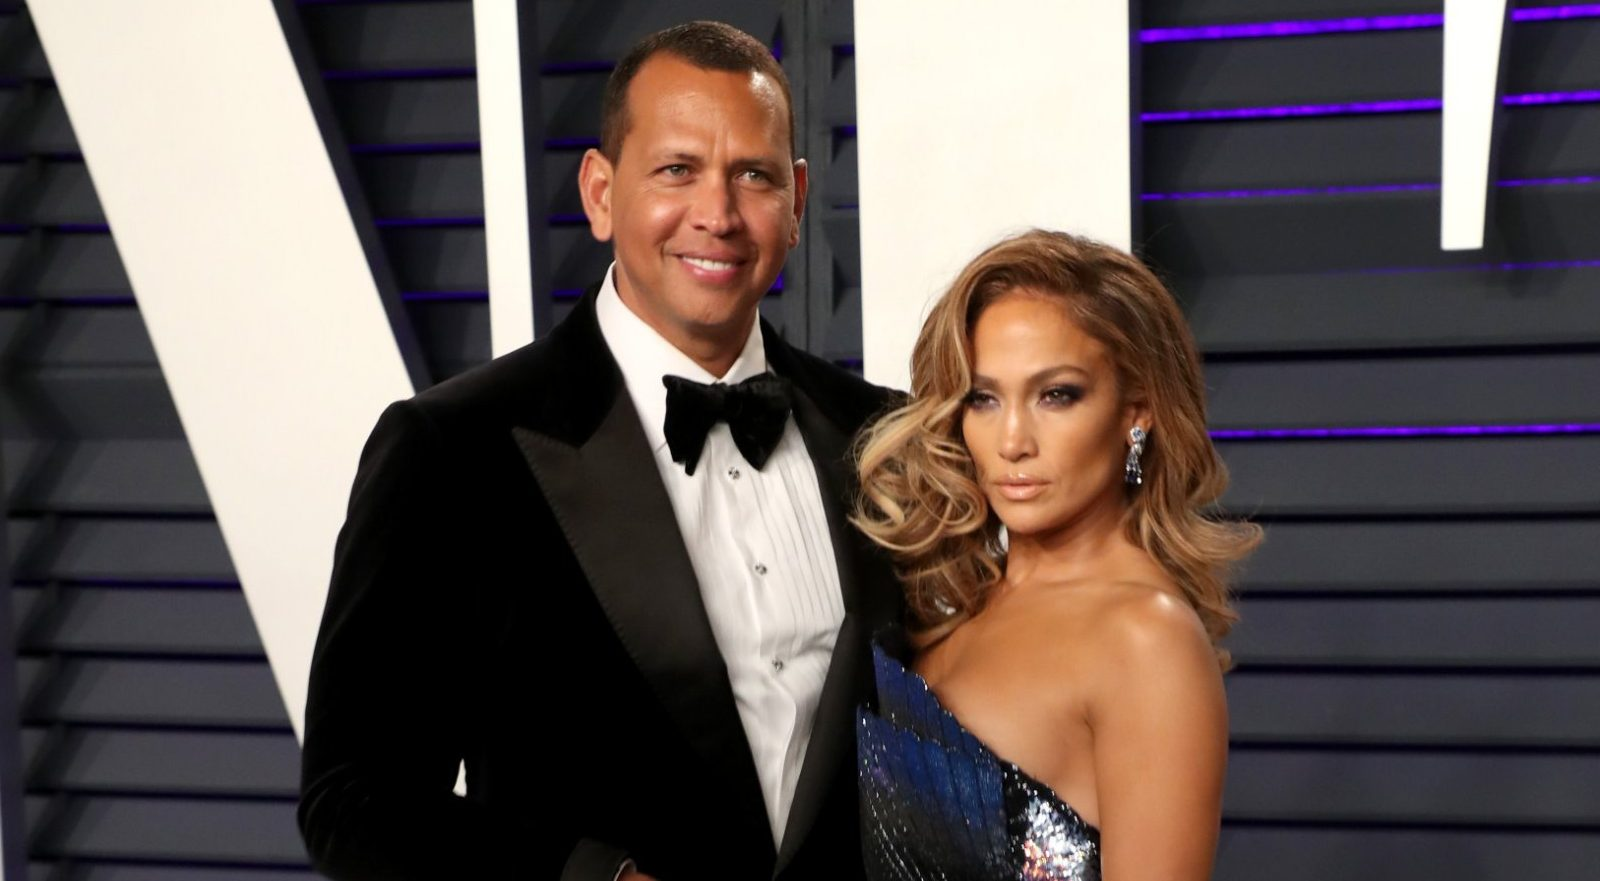 Mandatory Credit: Photo by Chelsea Lauren/REX/Shutterstock (10112927ii) Alex Rodriguez and Jennifer Lopez Vanity Fair Oscar Party, Arrivals, Los Angeles, USA - 24 Feb 2019